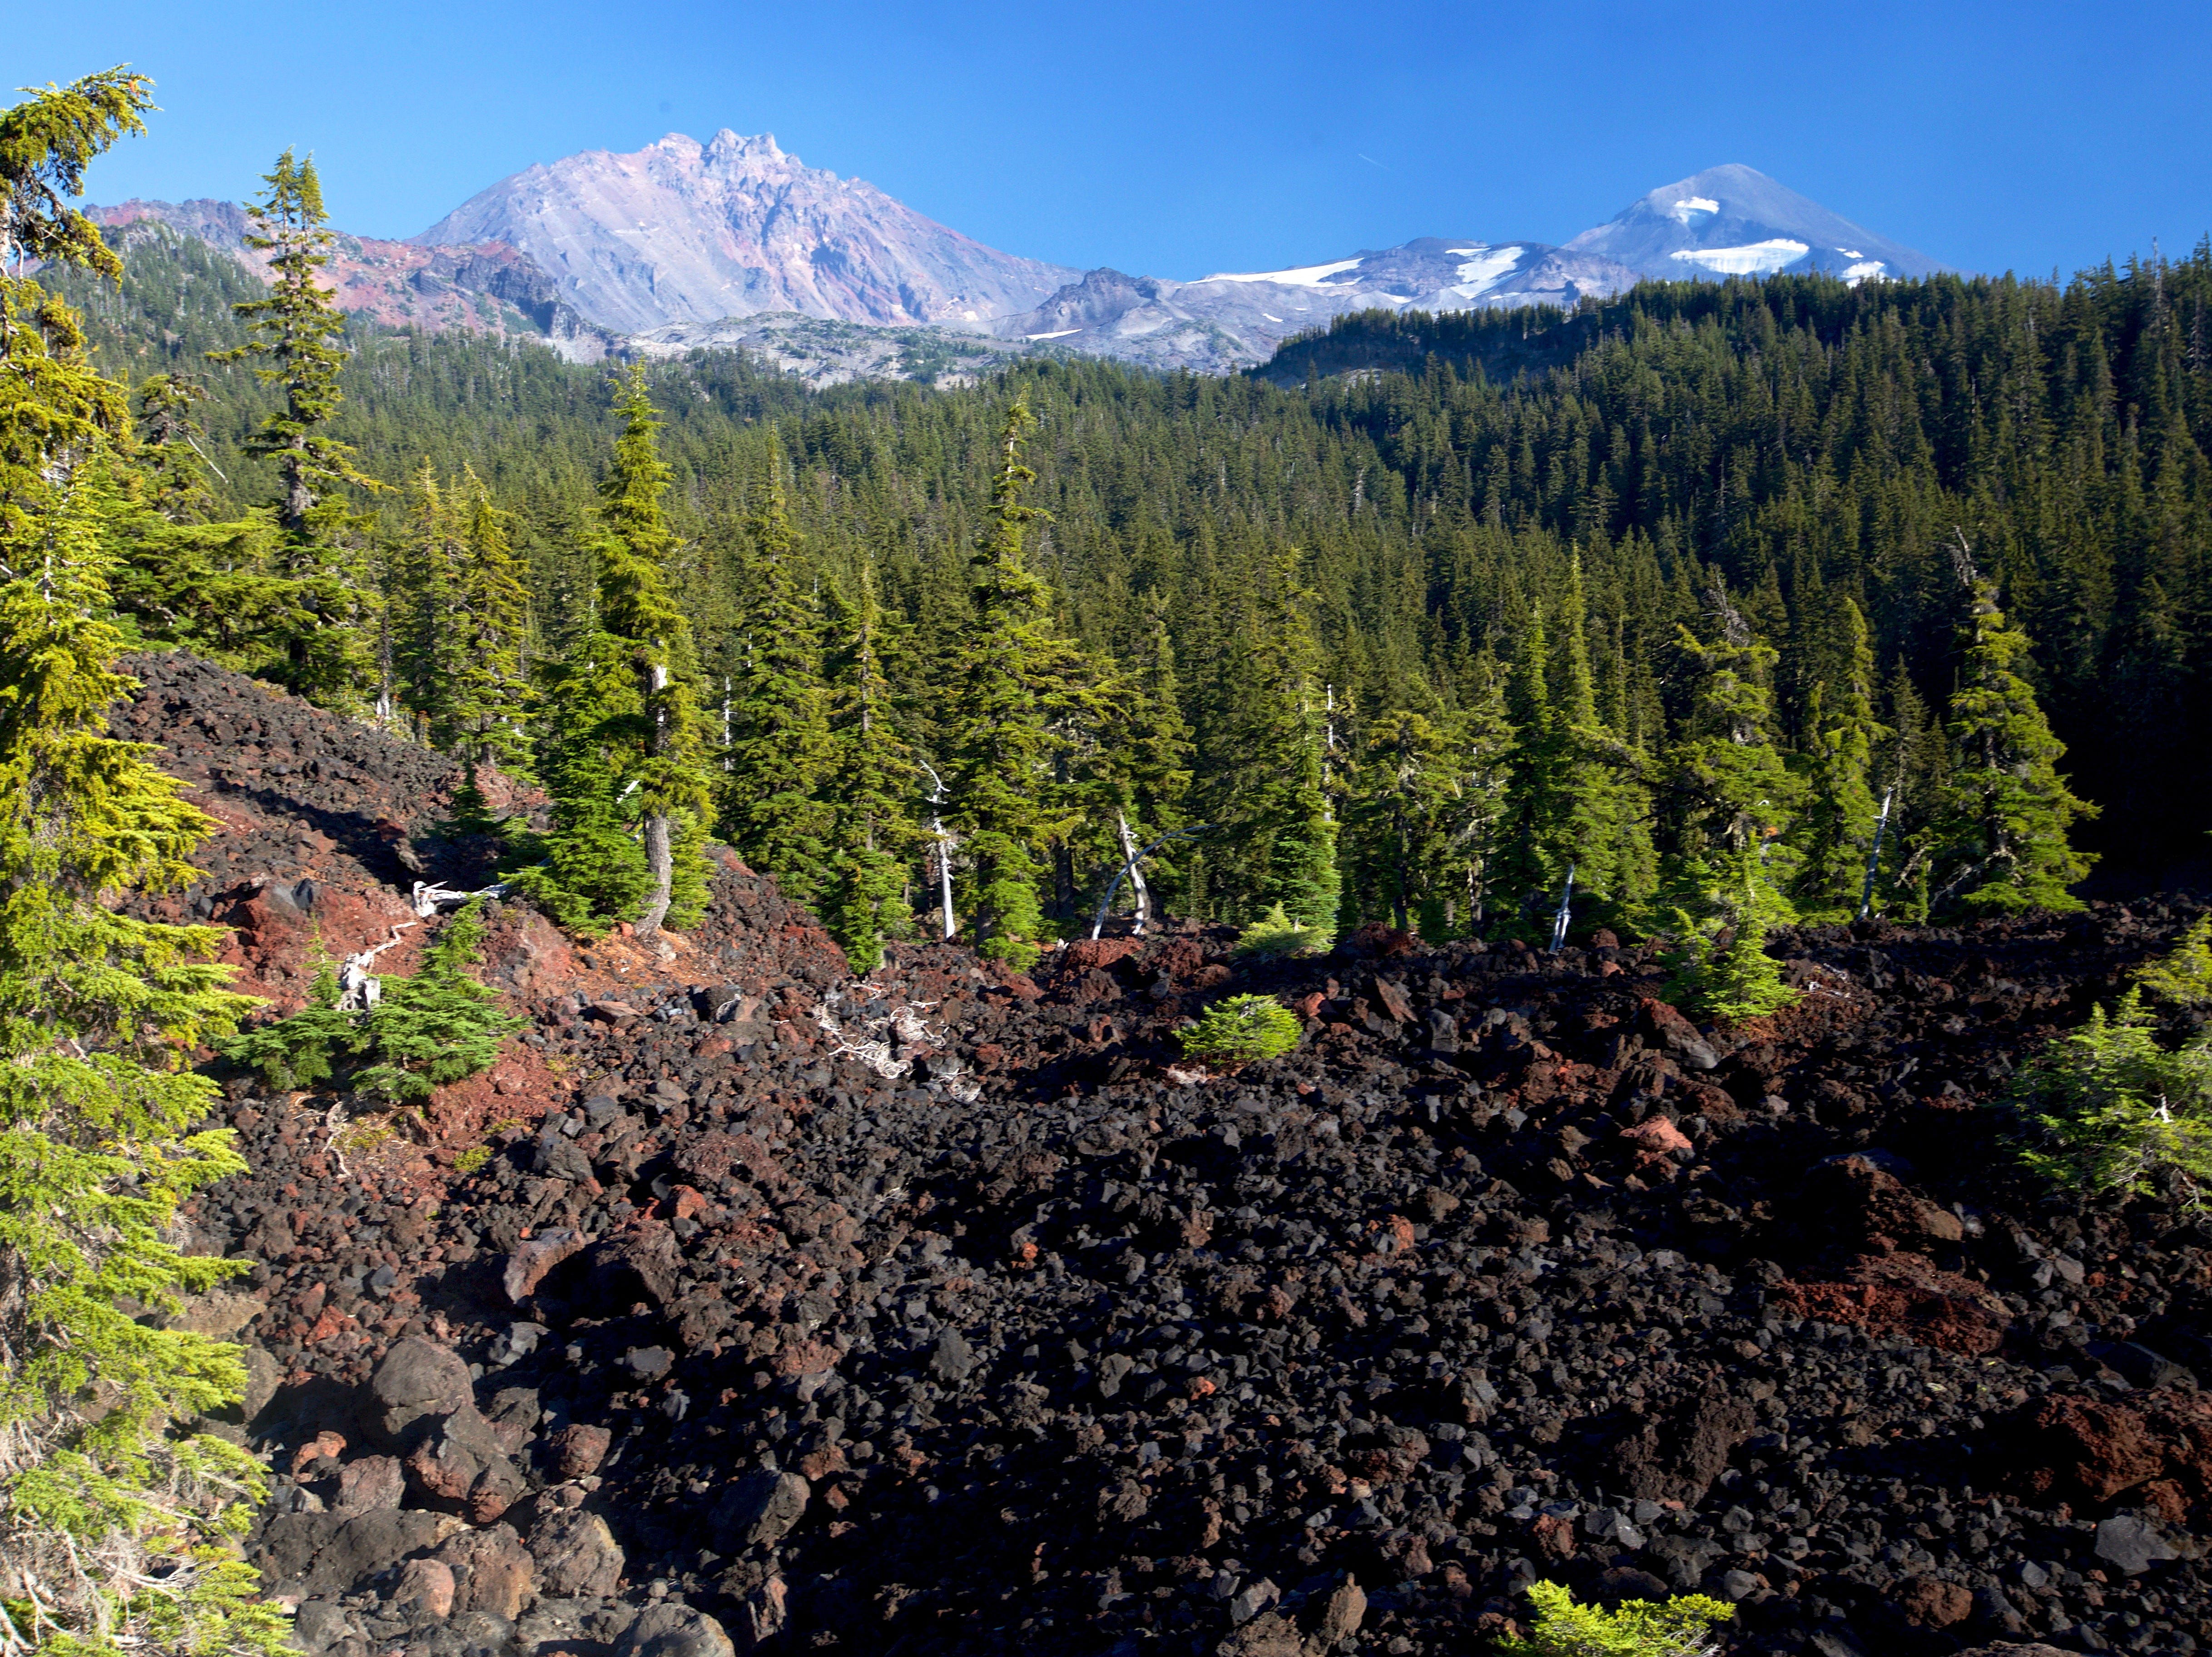 View of North and Middle Sister from Obsidian Trail in the Three Sisters Wilderness.